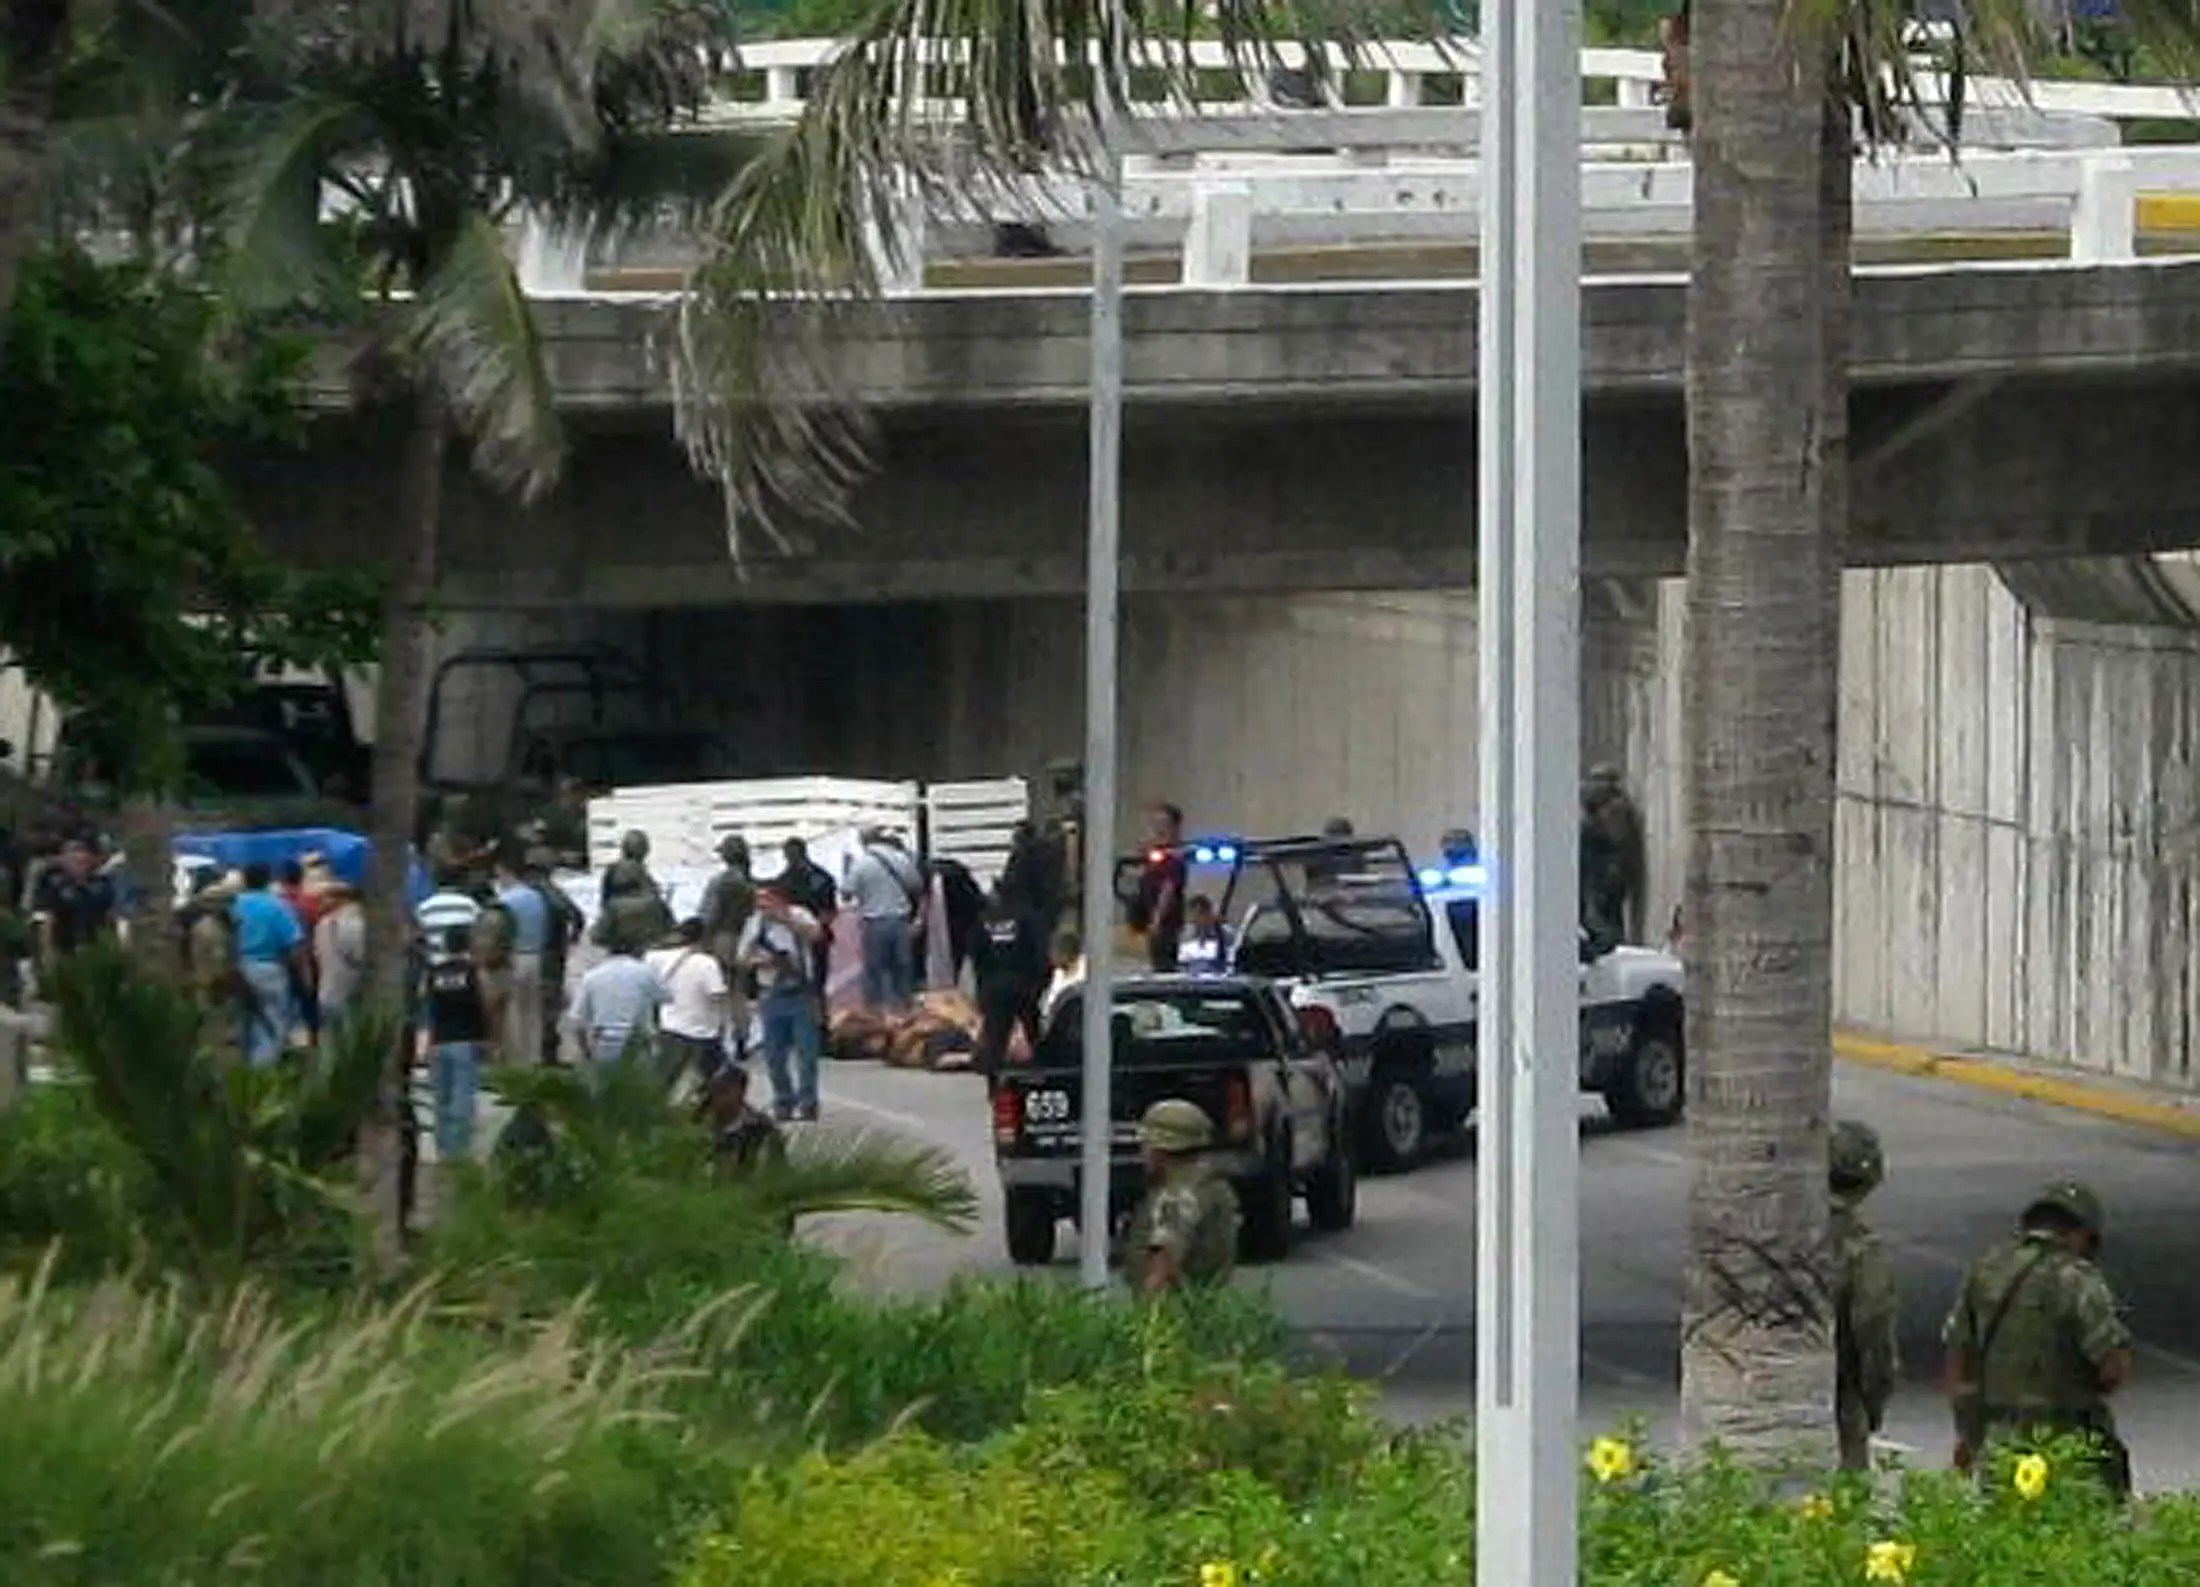 Veracruz Boca del Rio Zetas Jalisco CJNG cartel Mexico killings bodies